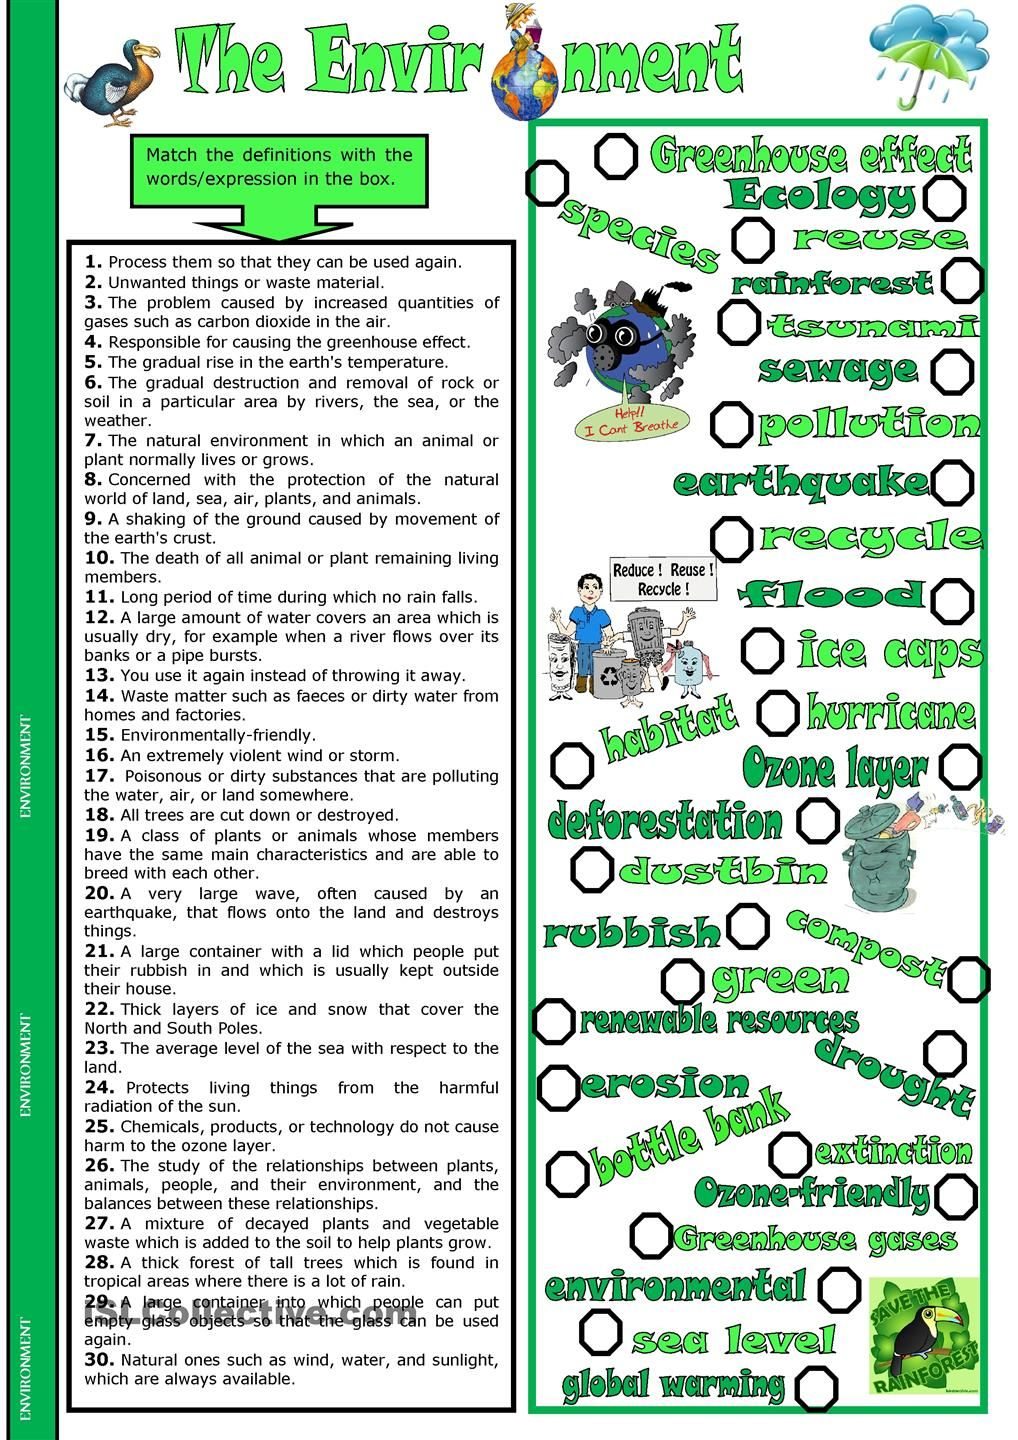 Worksheets Ecology Vocabulary Worksheet the environment angol pinterest english and matching exercise with vocabulary